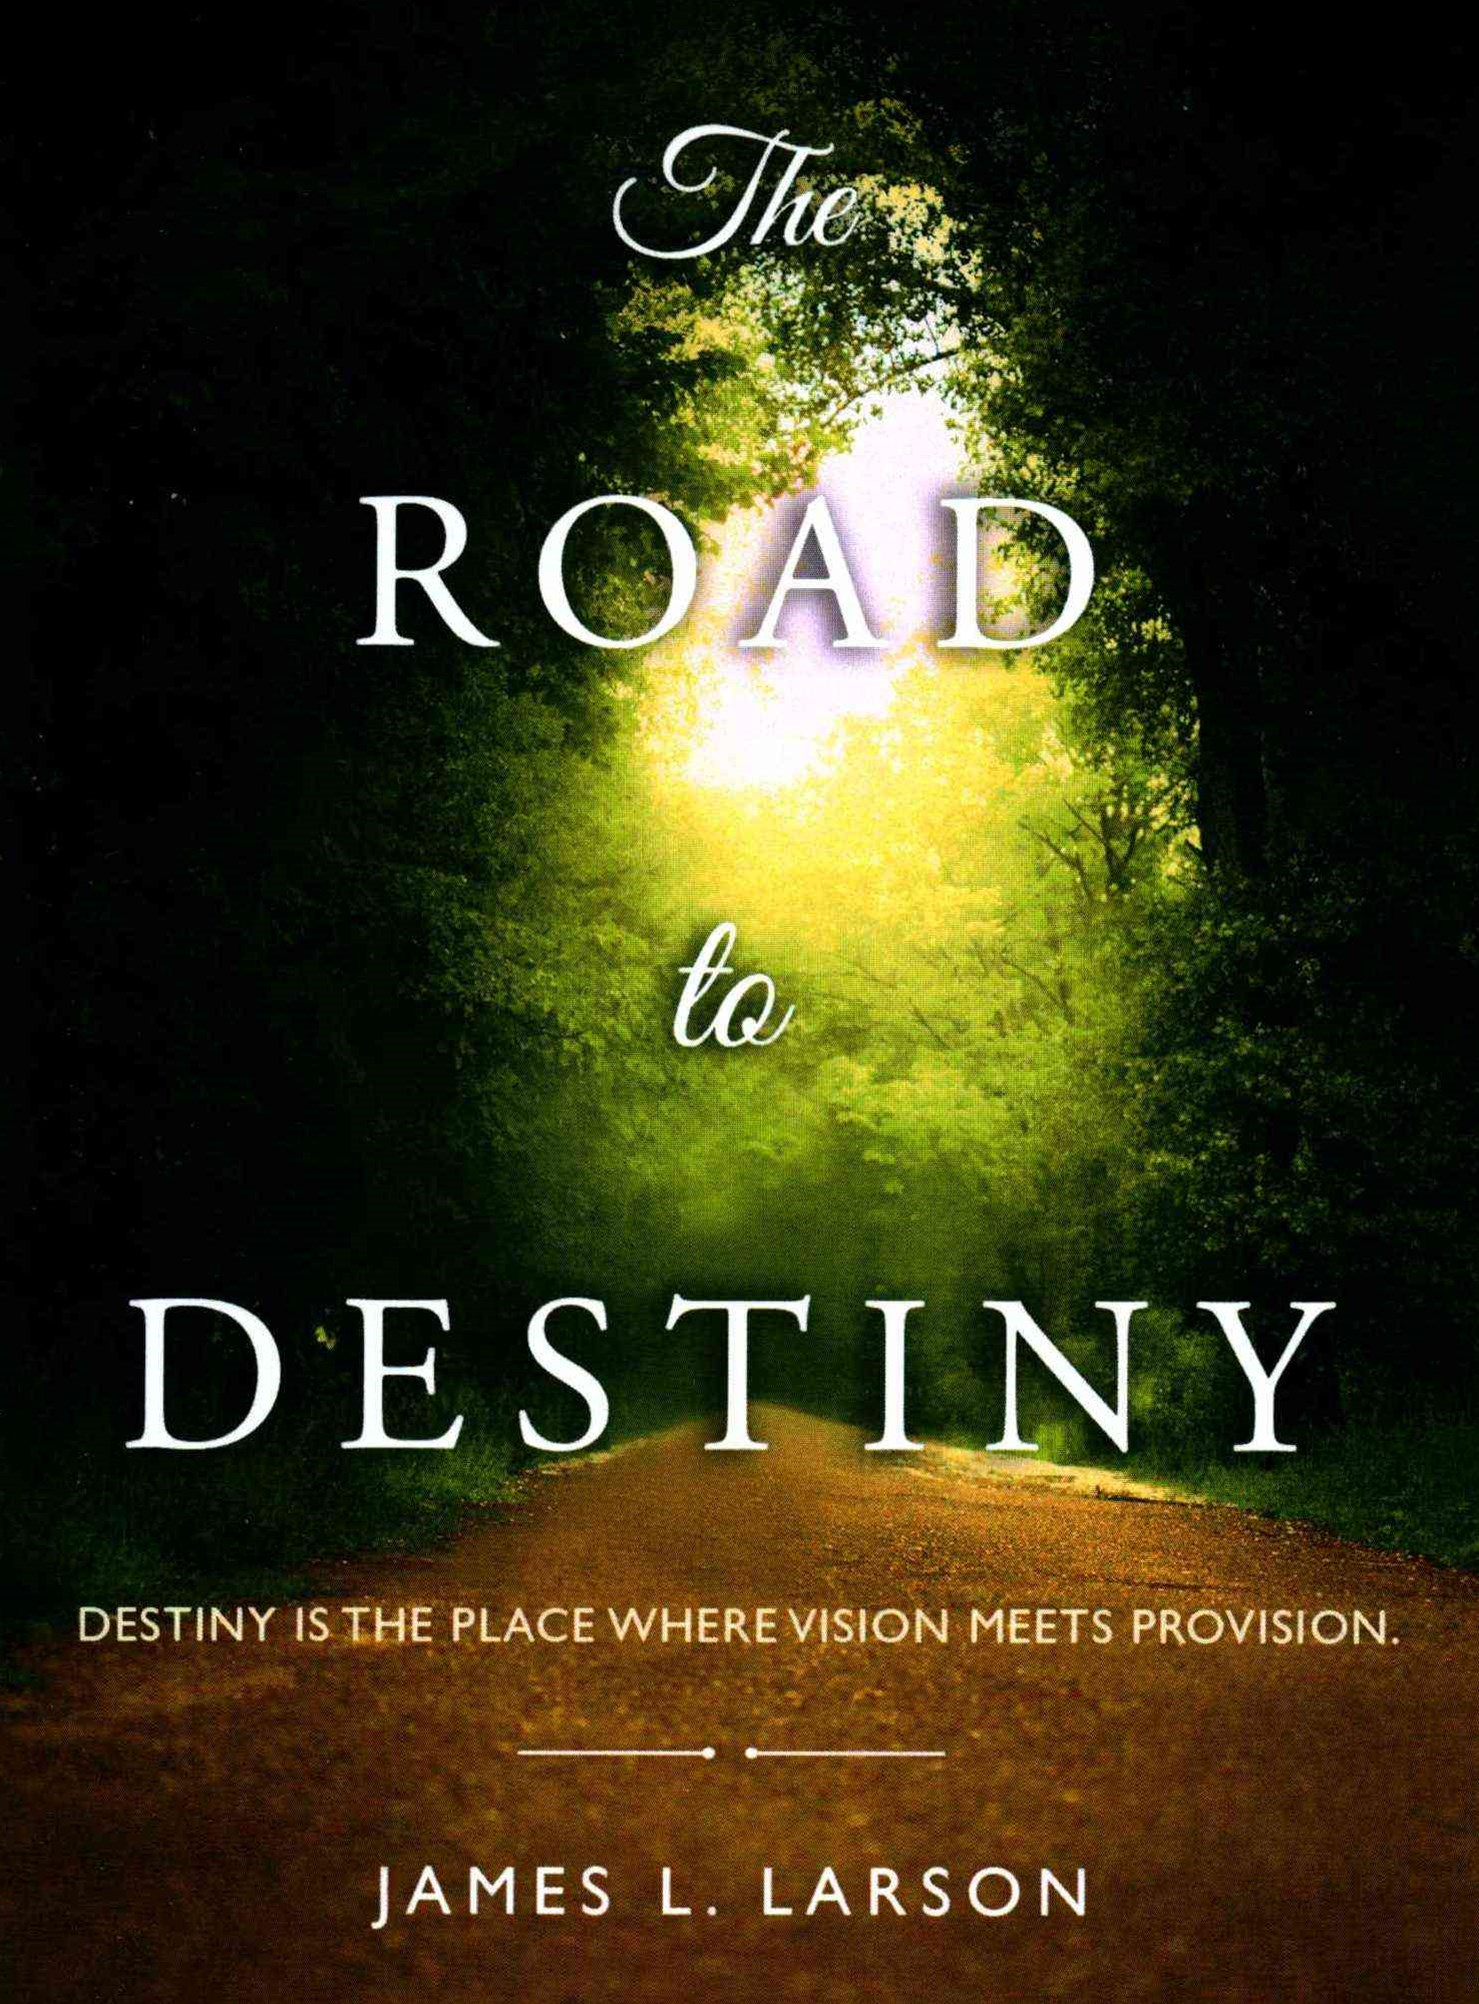 The Road to Destiny